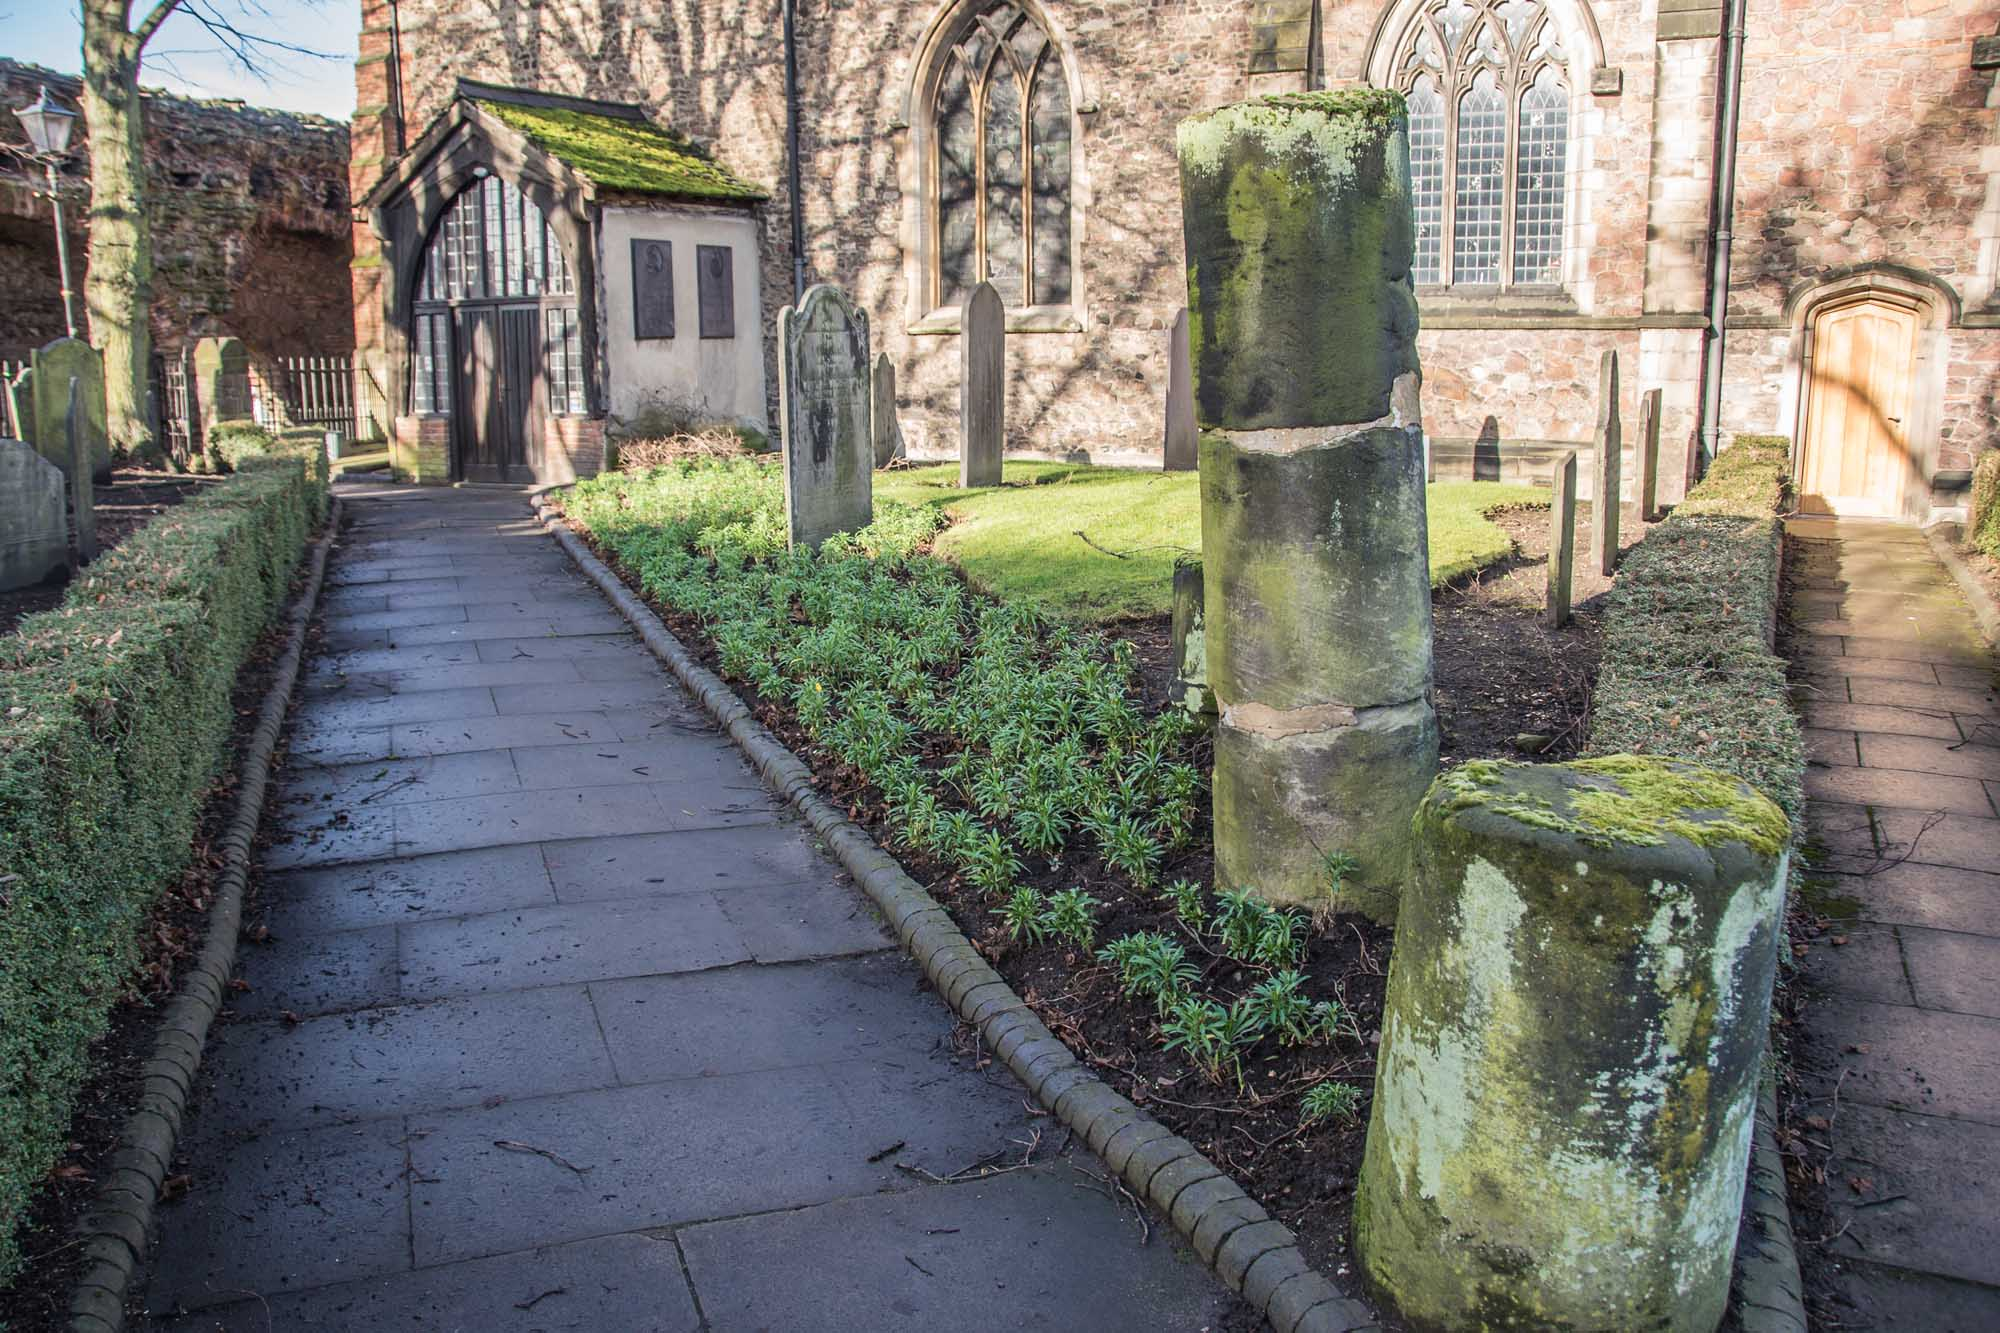 The stone pillars in the graveyard of St Nicholas Church believed to be from the Roman Forum -